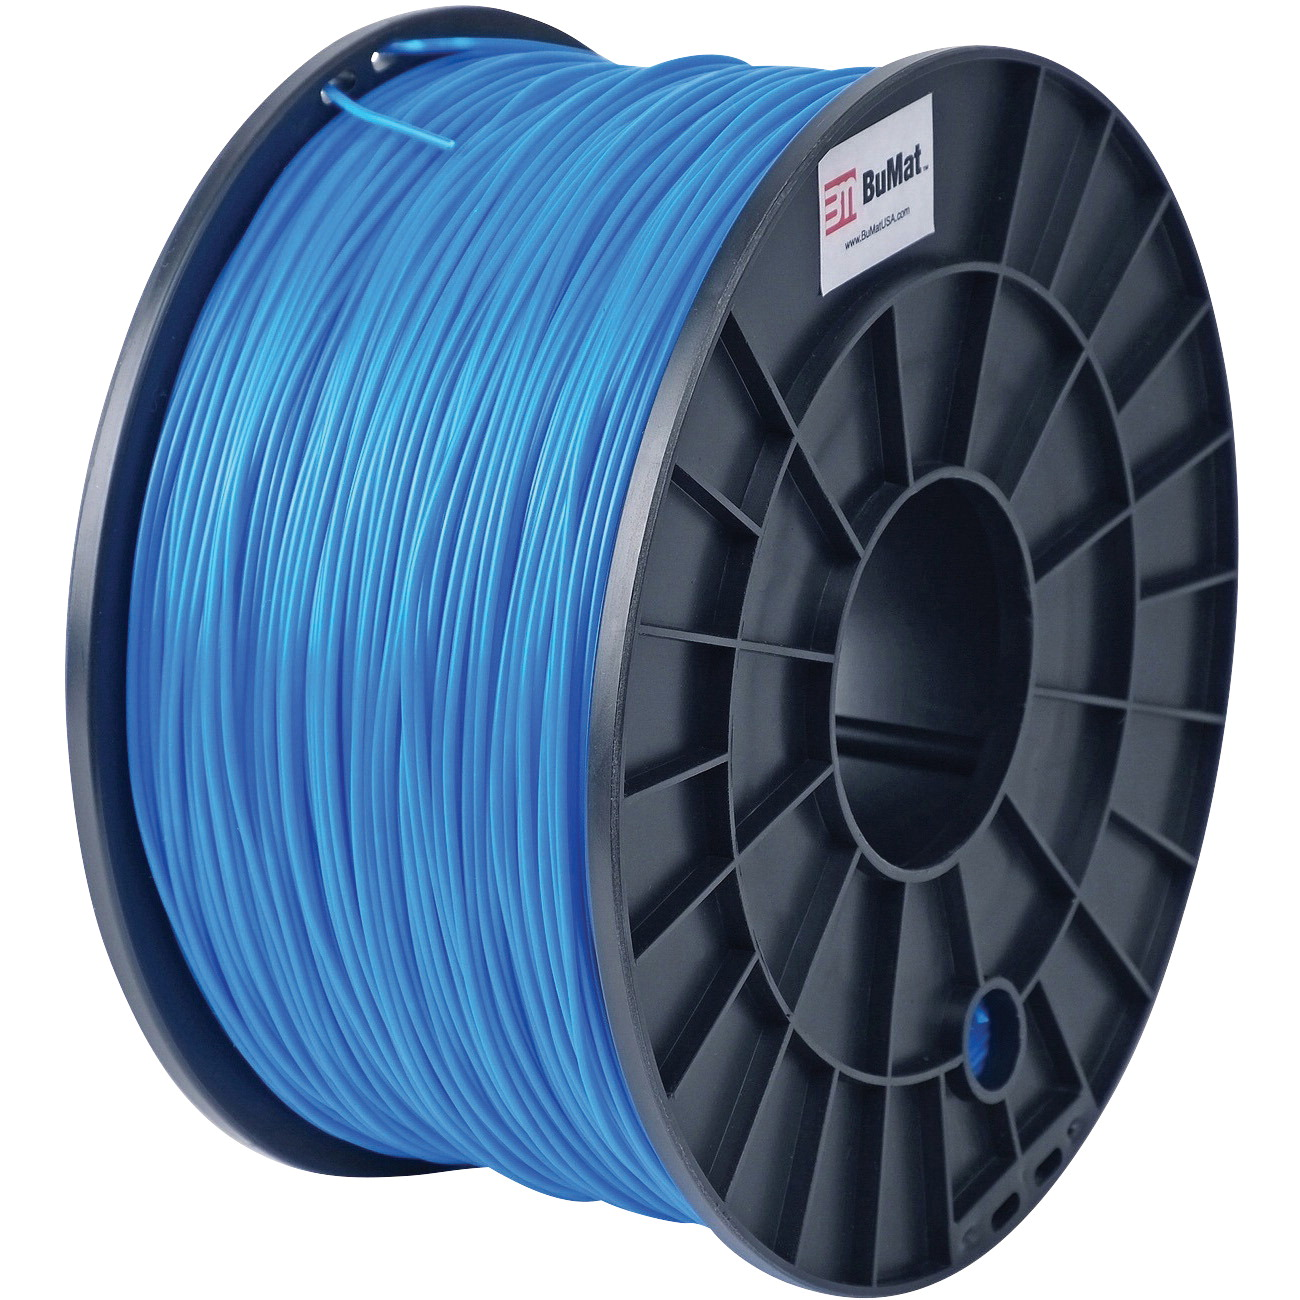 BuMat Filament Cartridge, 1.75 mm, PLA, Blue, For Use With 3D Printer Nozzles